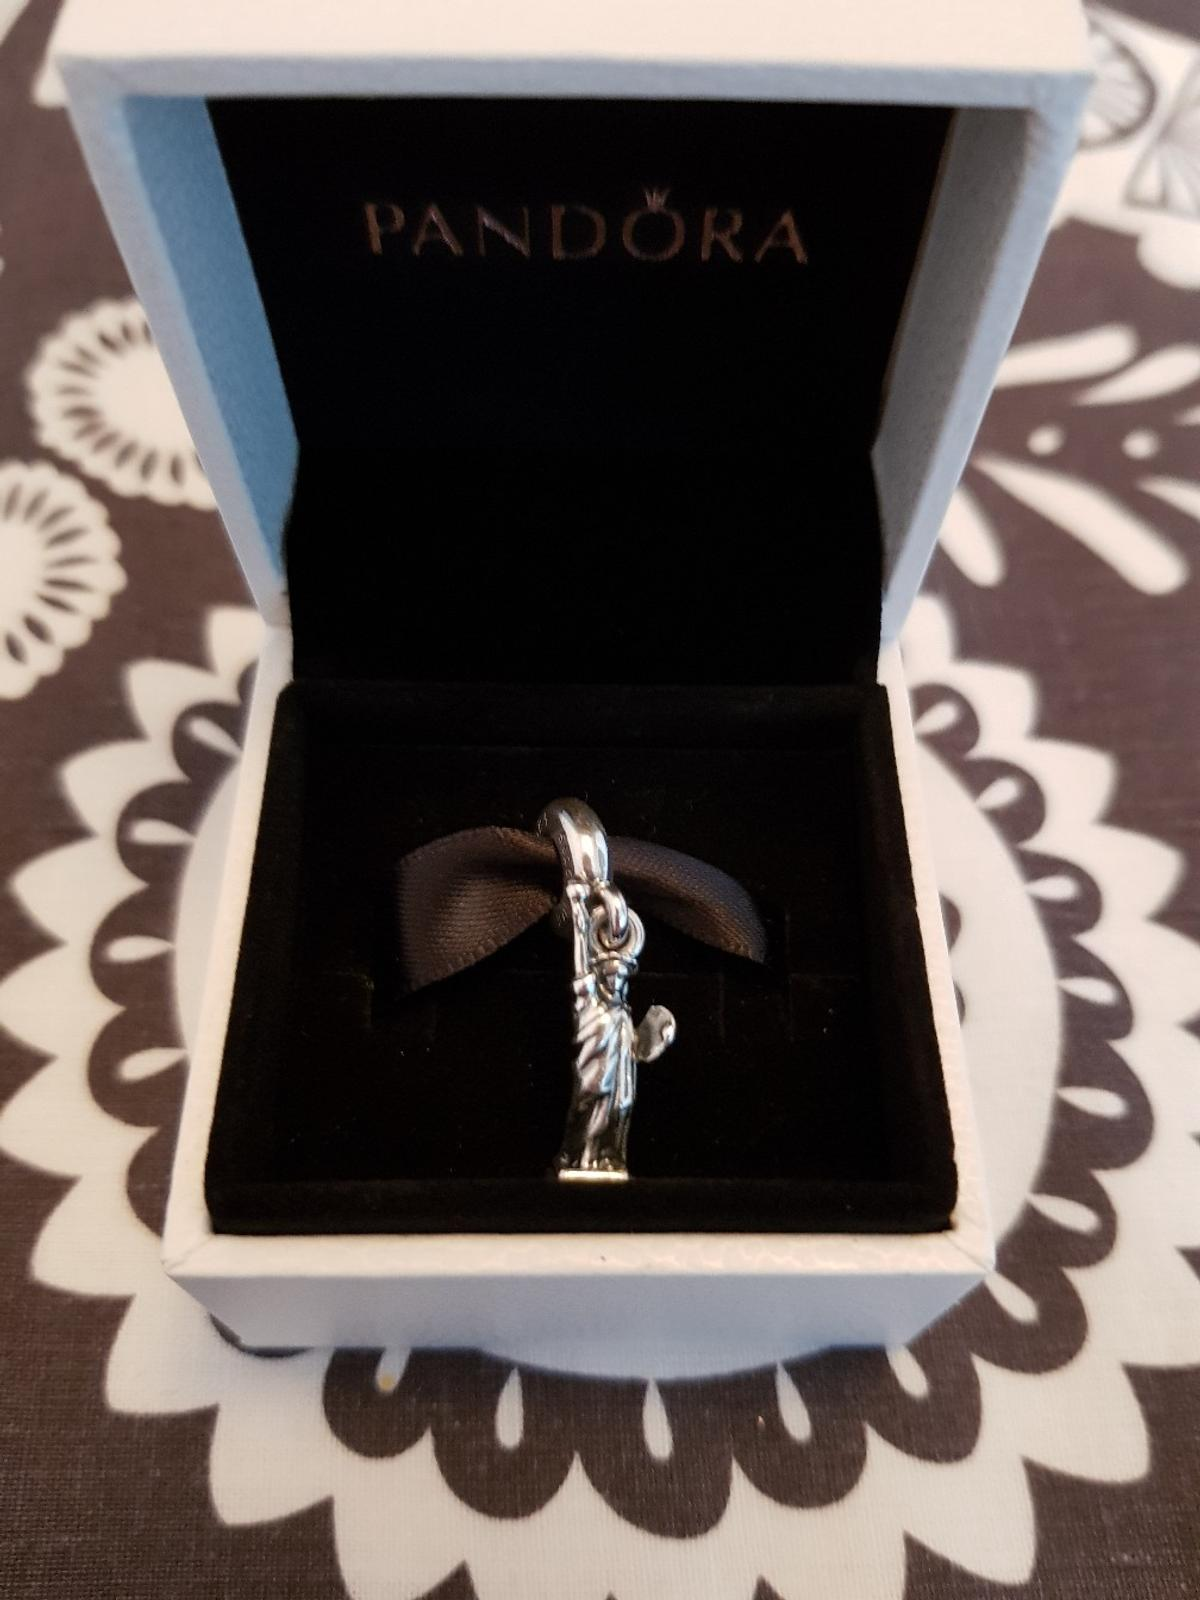 8b330d8d7 Pandora Statue of Liberty Charm in B43 Walsall for £10.00 for sale ...